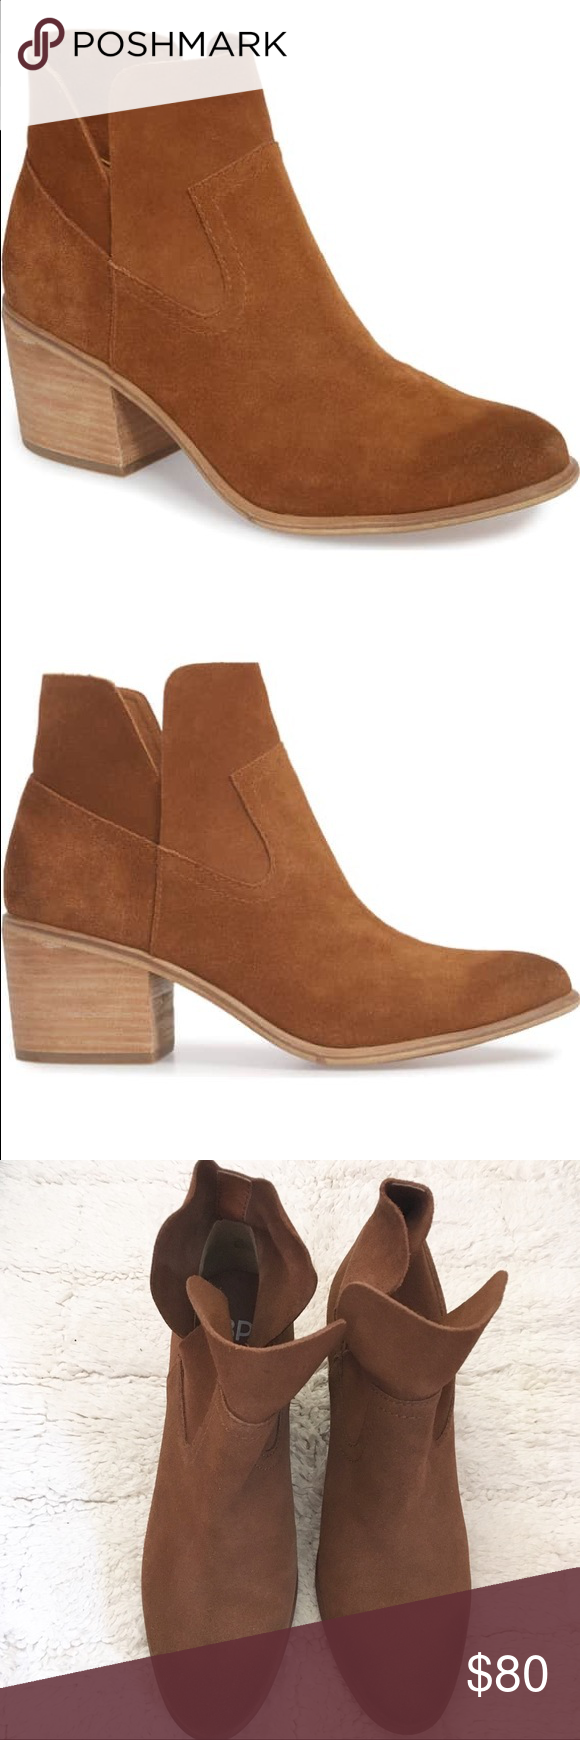 d6974b35f56 Bp Brice Notched Bootie A notched topline brings angular shape and easy-on  convenience to a Western-inspired bootie kicked up with a high squared vamp  and a ...